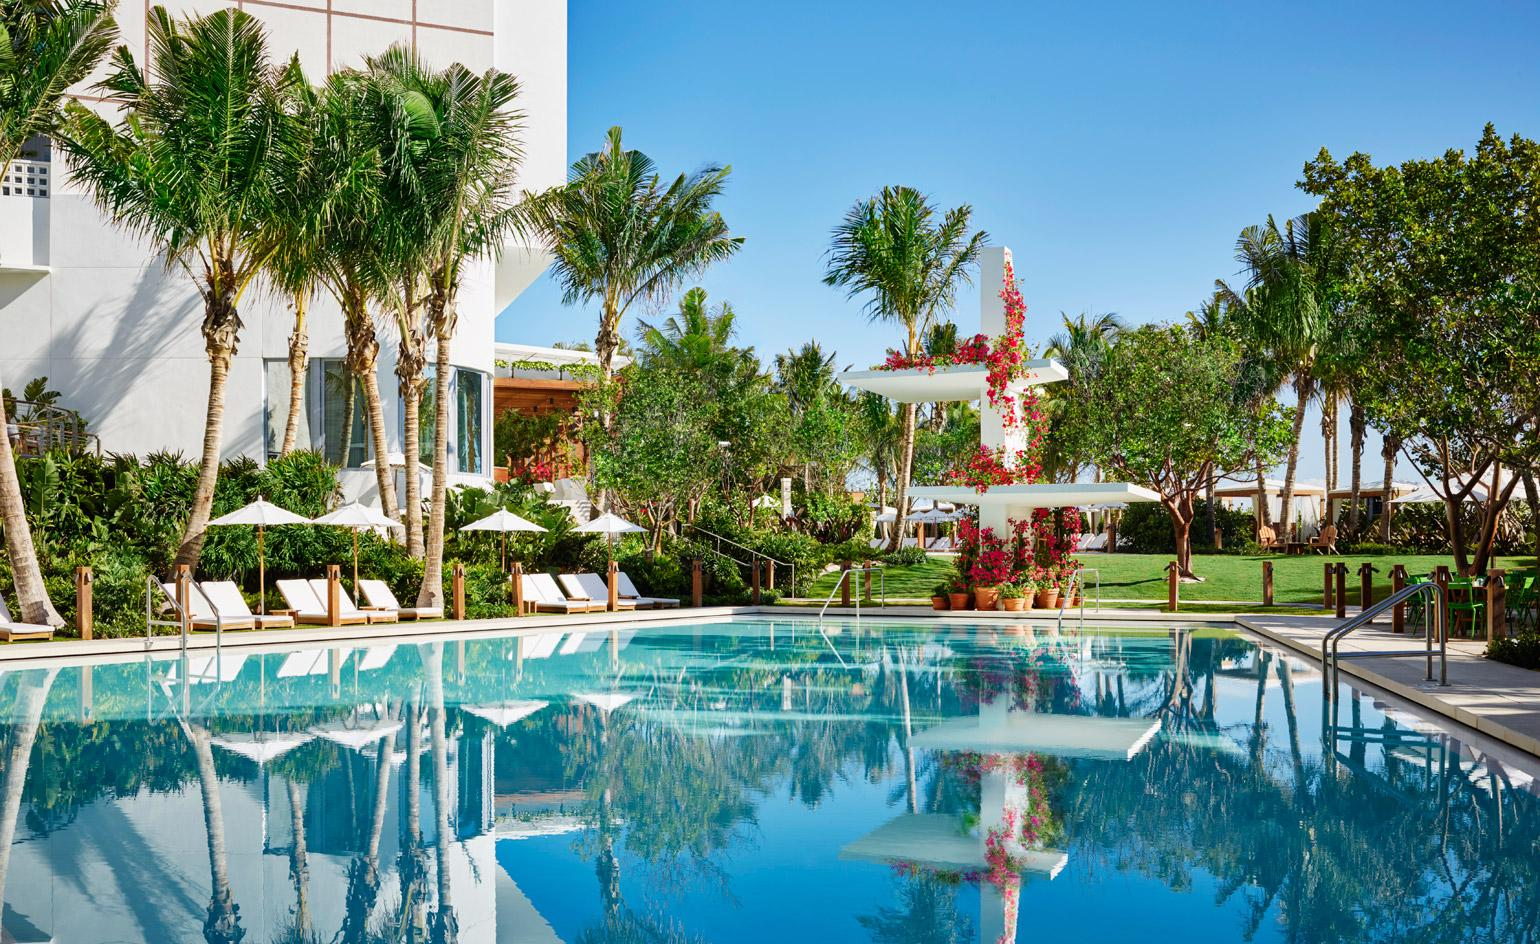 Hotels Miami Hotels Outlet Deals